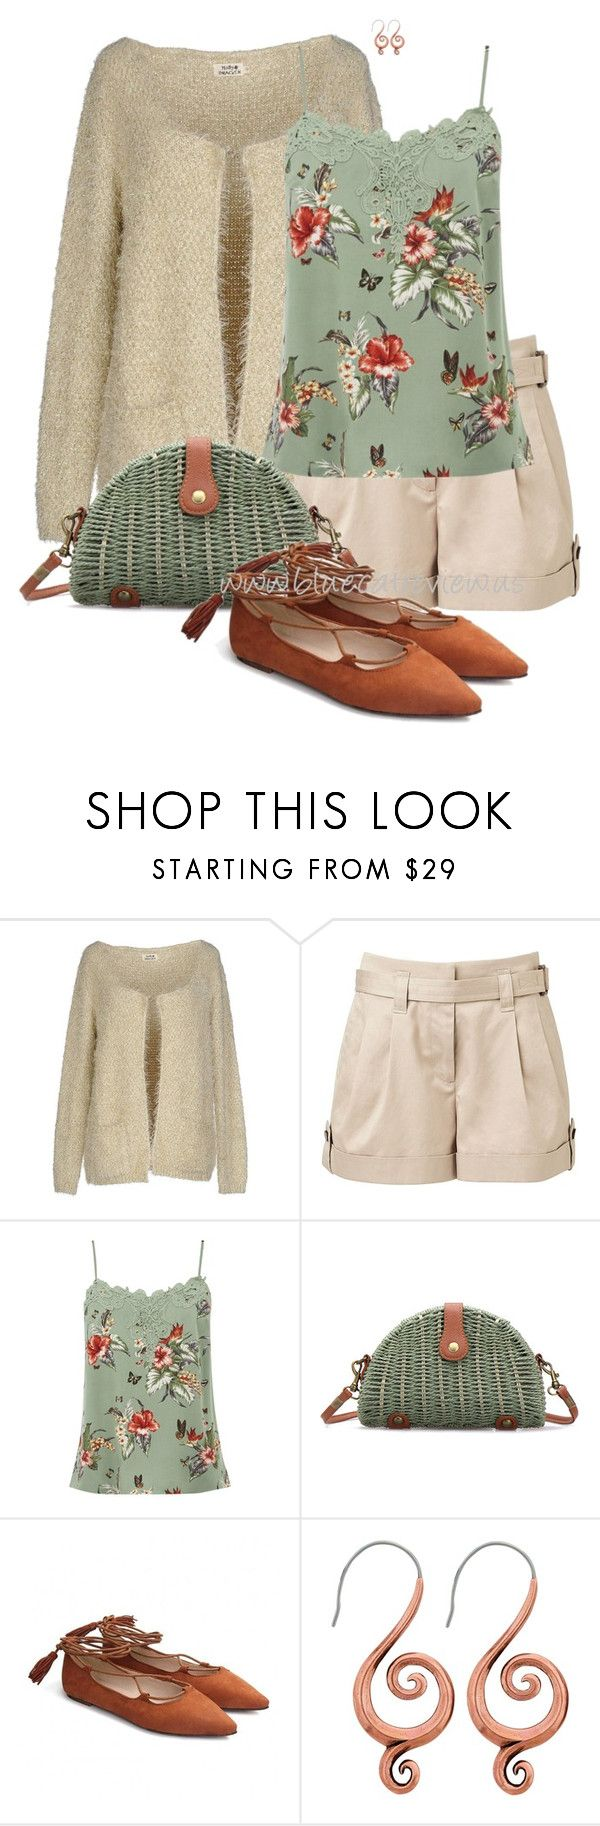 """Cardis & Shorts 2"" by bluecatreview13 ❤ liked on Polyvore featuring Molly…"